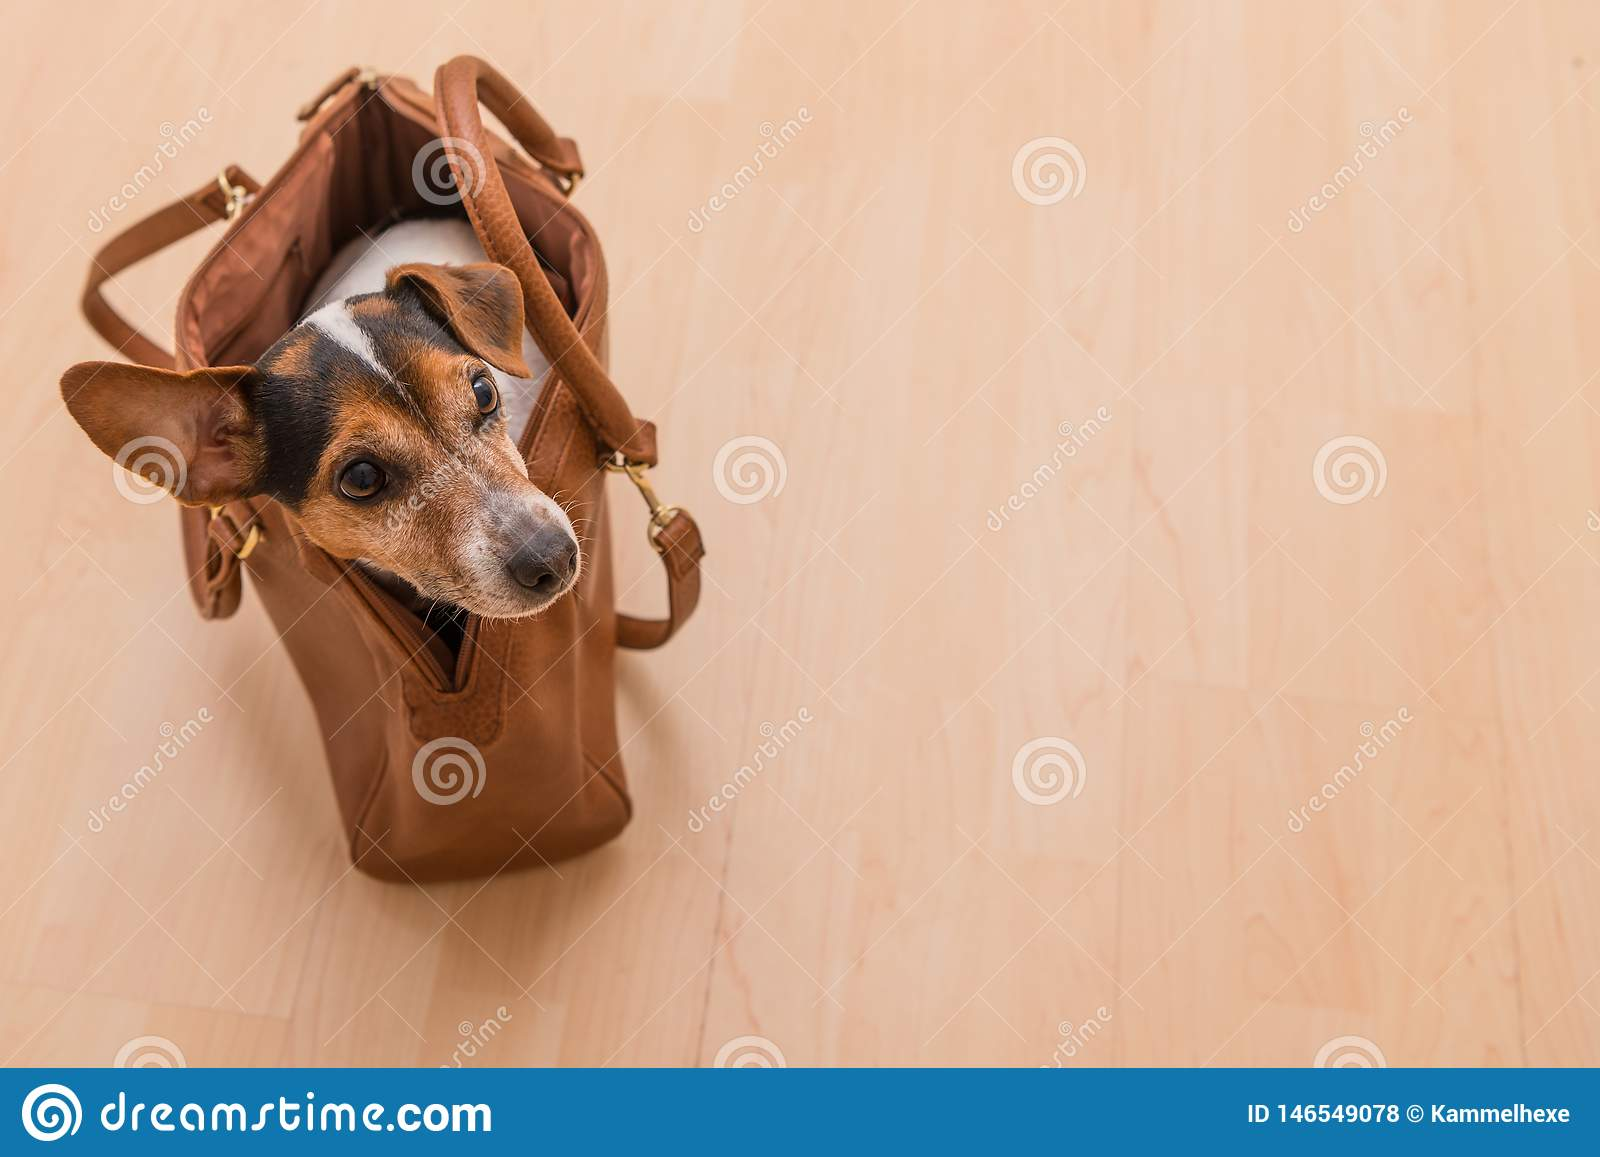 Cute jack russell doggy in a bag